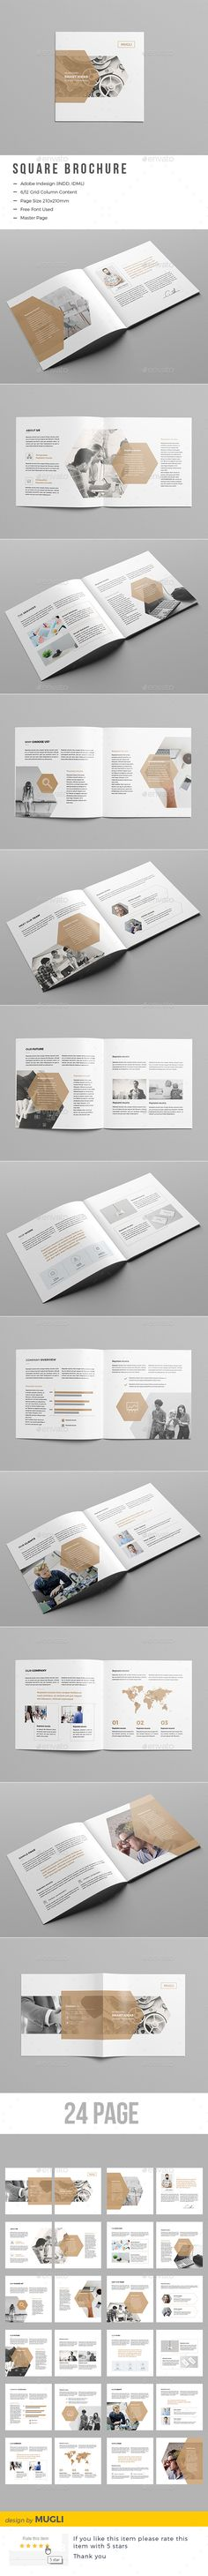 Corporate Square Brochure Template 	InDesign INDD